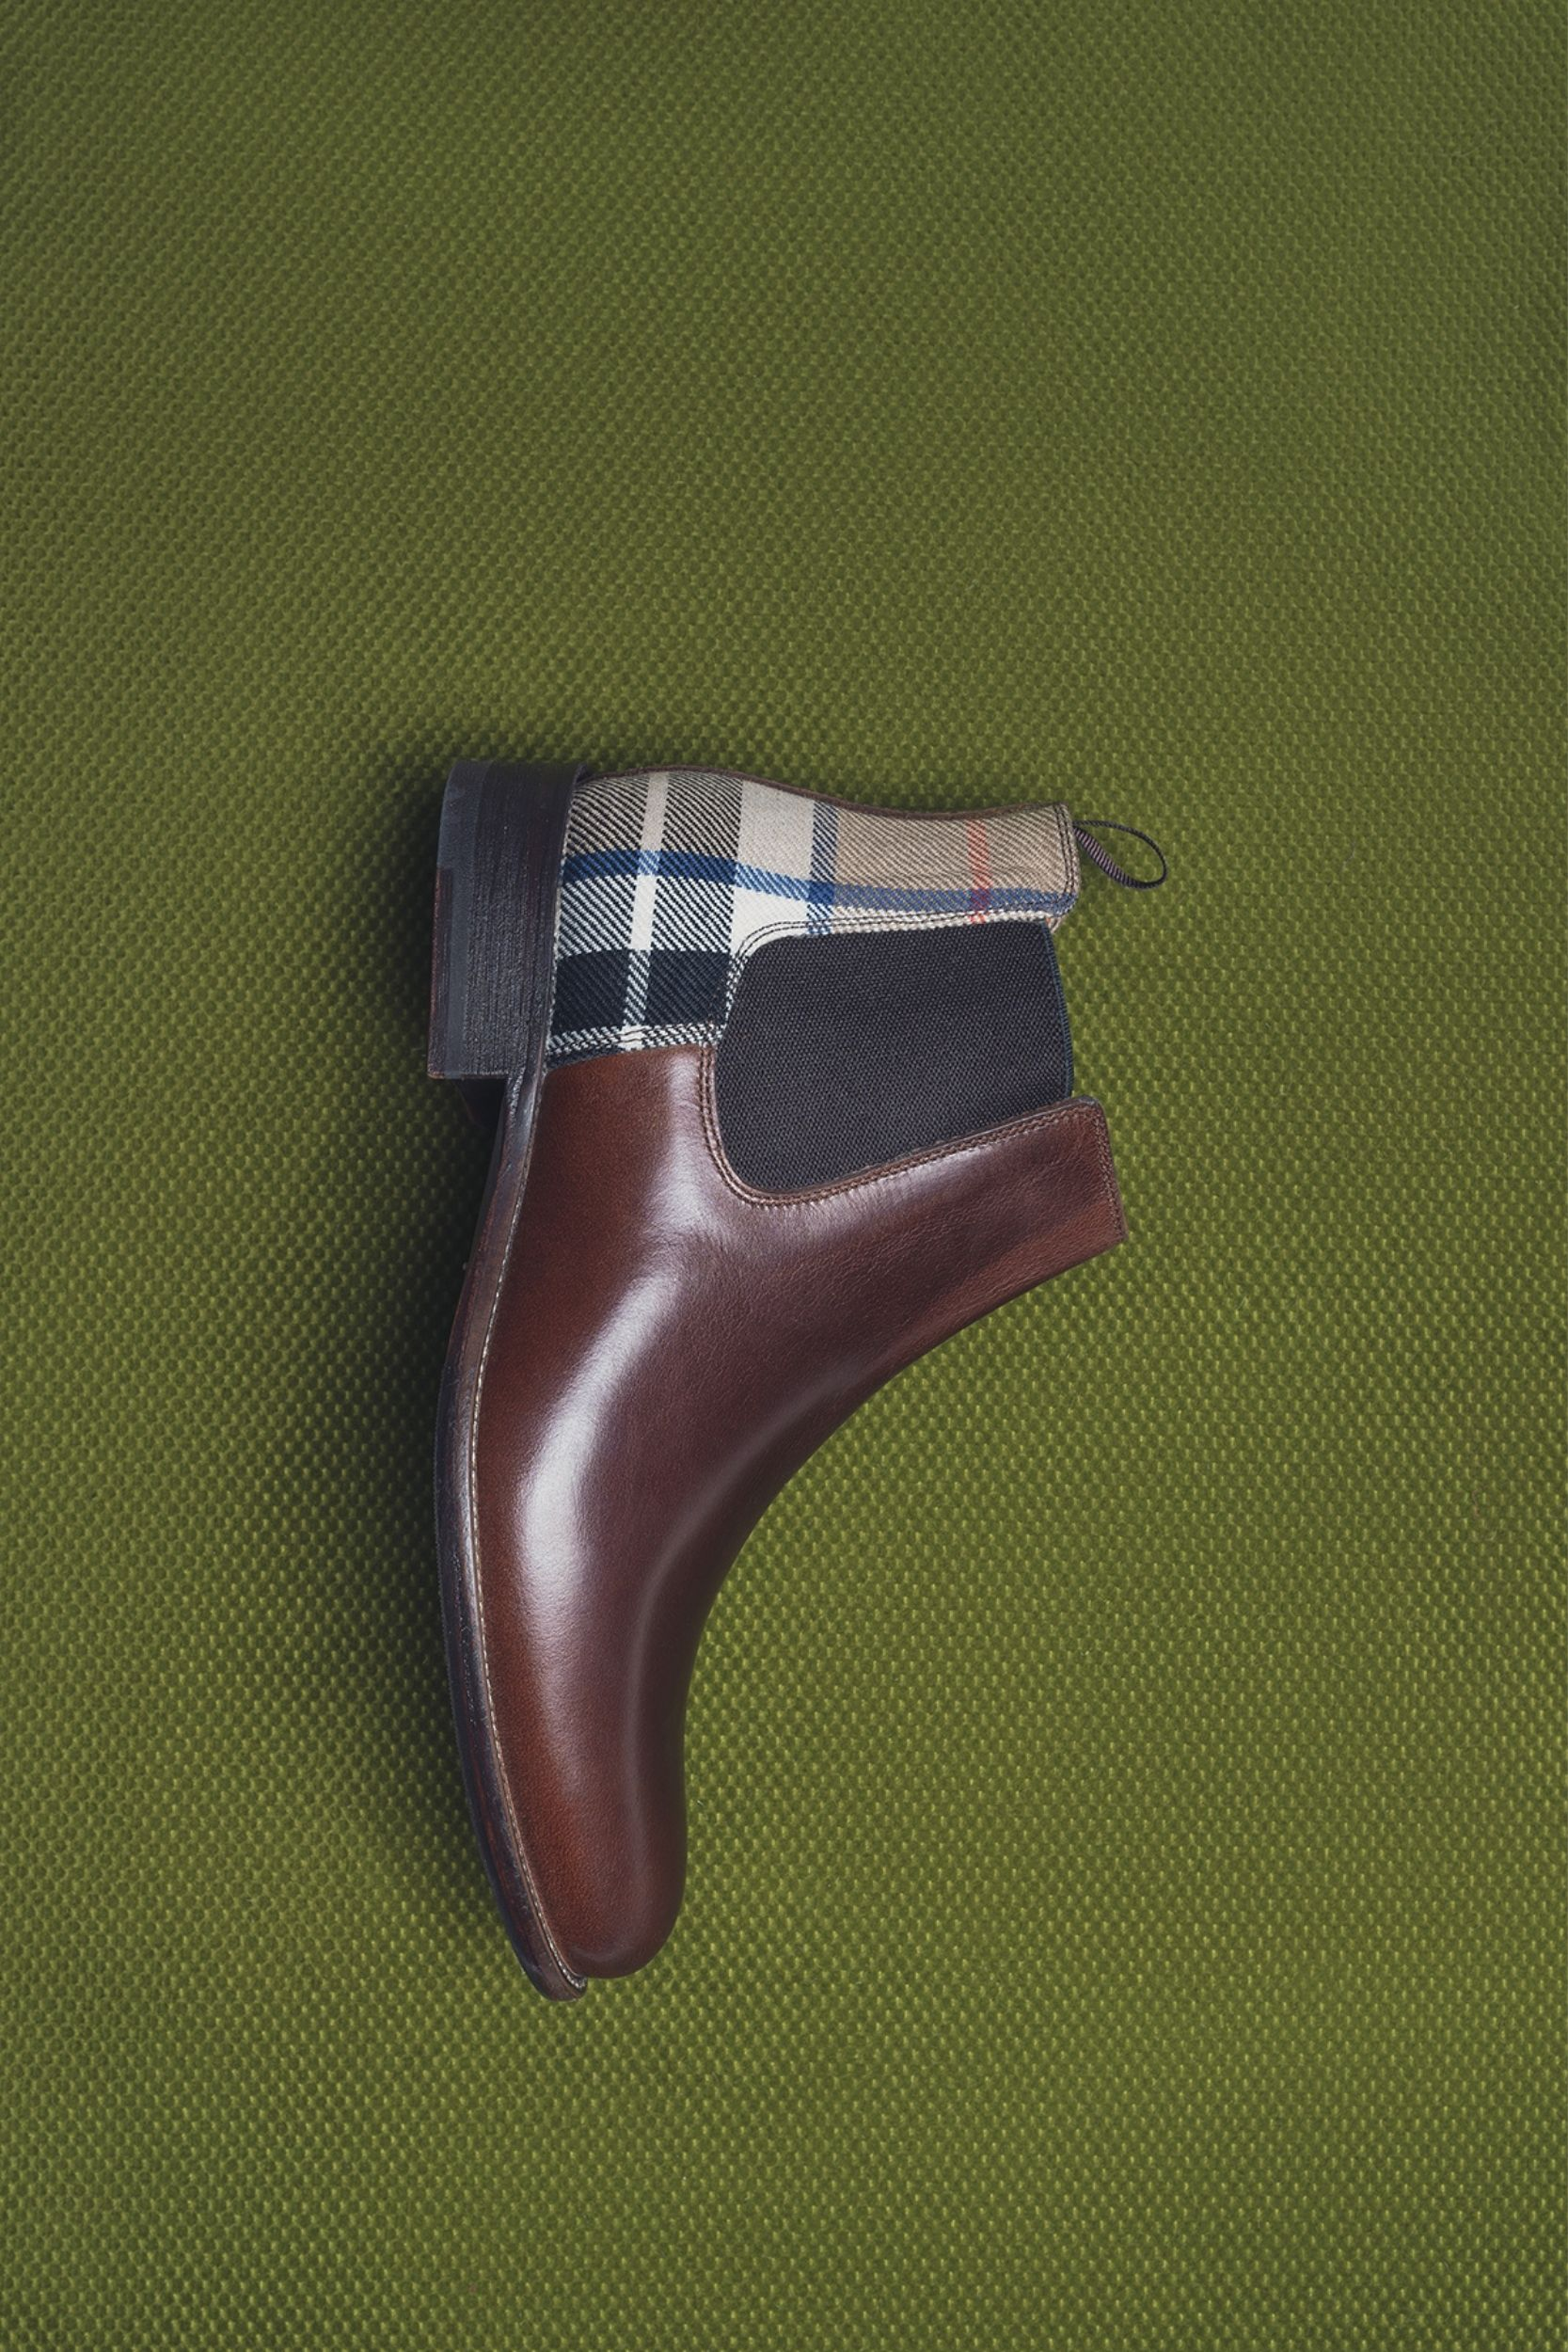 royal scotland chelsea boots from liebre style collection inspired in scotland